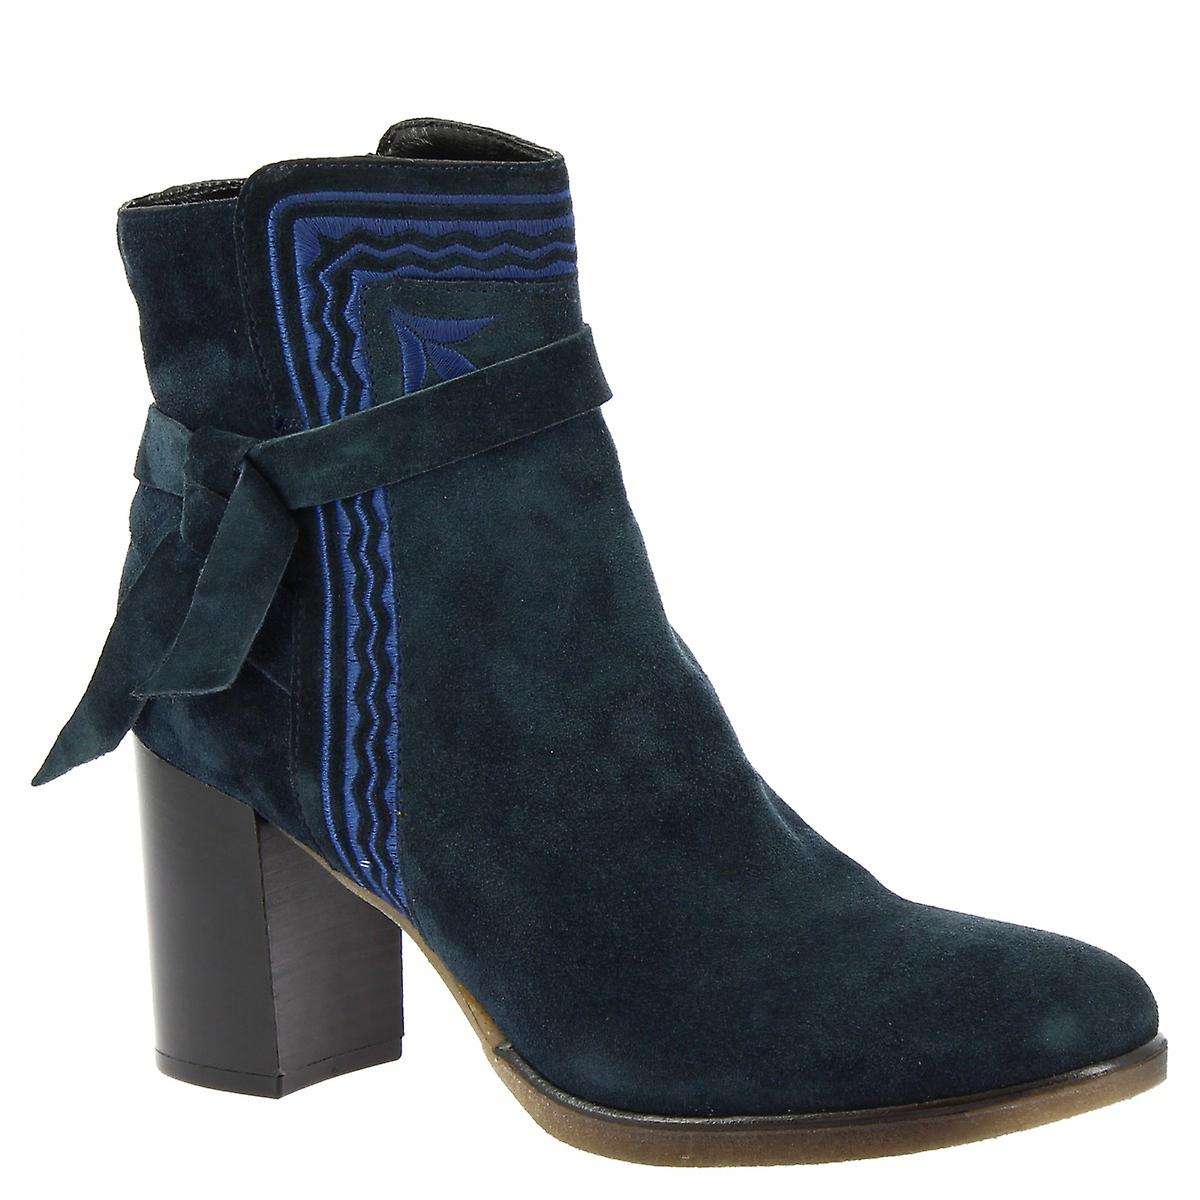 Leonardo Shoes Women's handmade heels ankle boots blue suede side zip and strap RABos